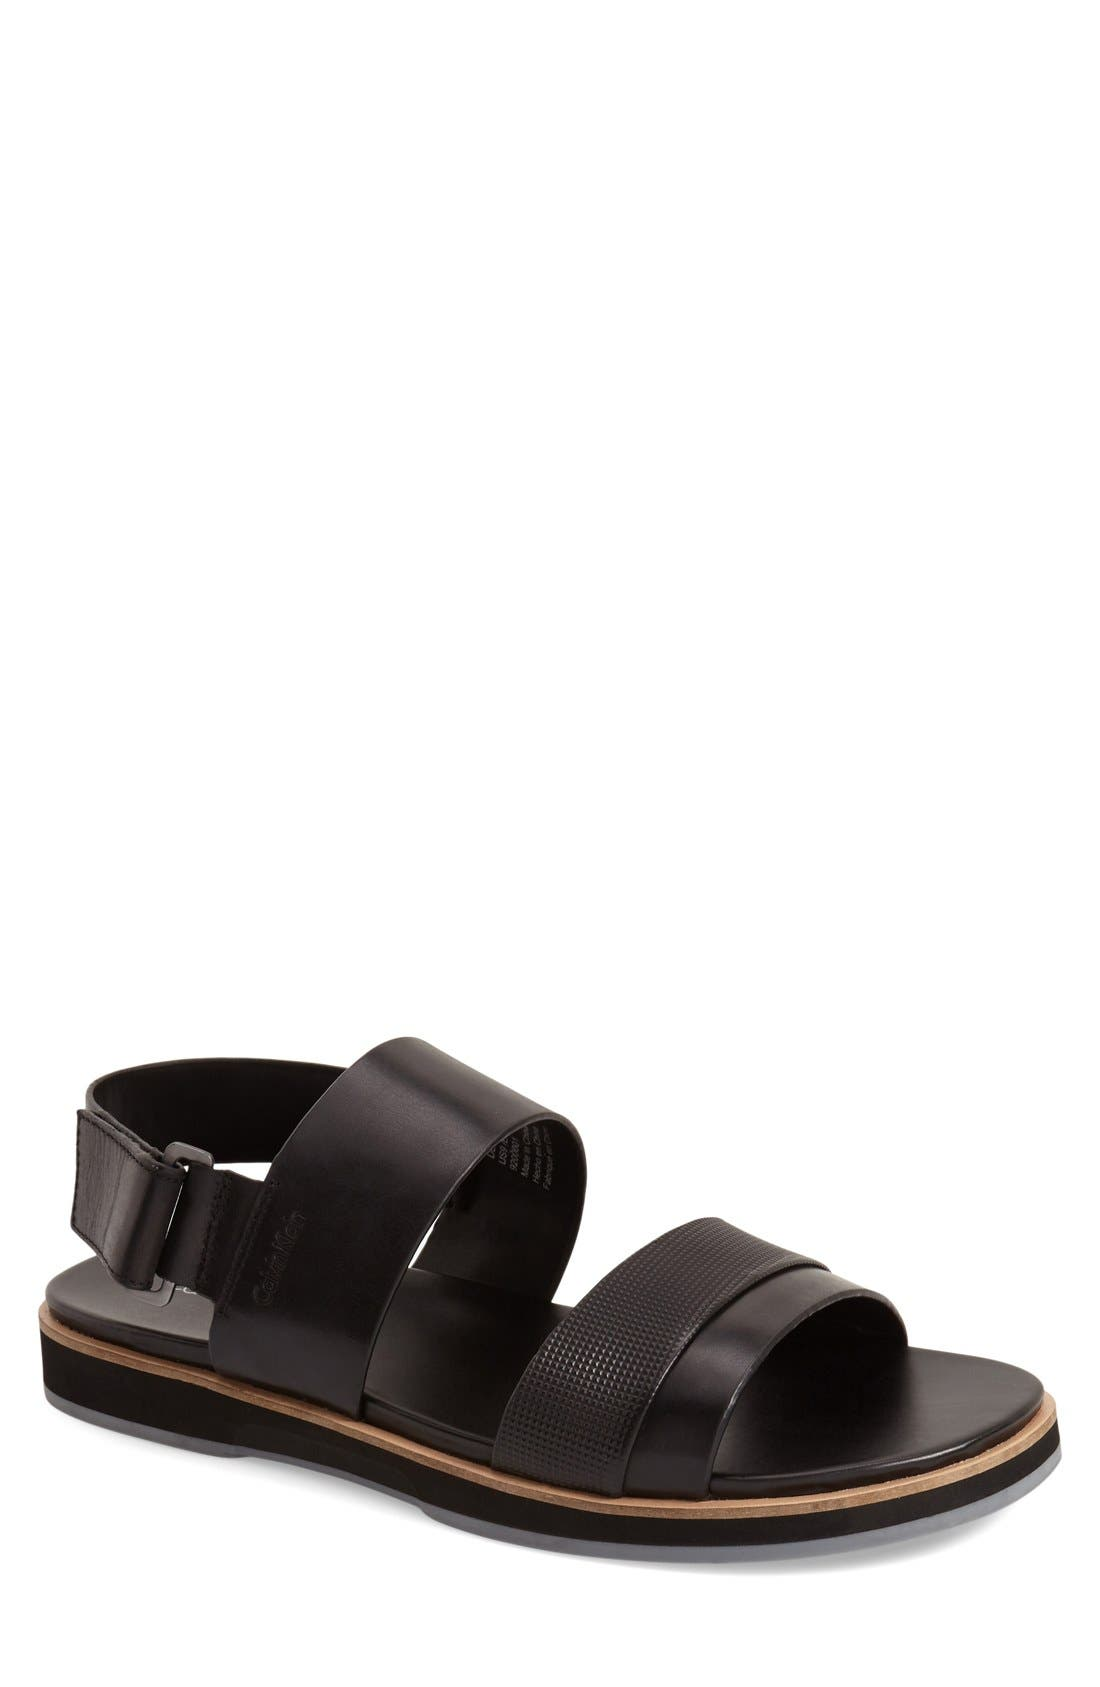 'Dex' Embossed Leather Sandal,                         Main,                         color,